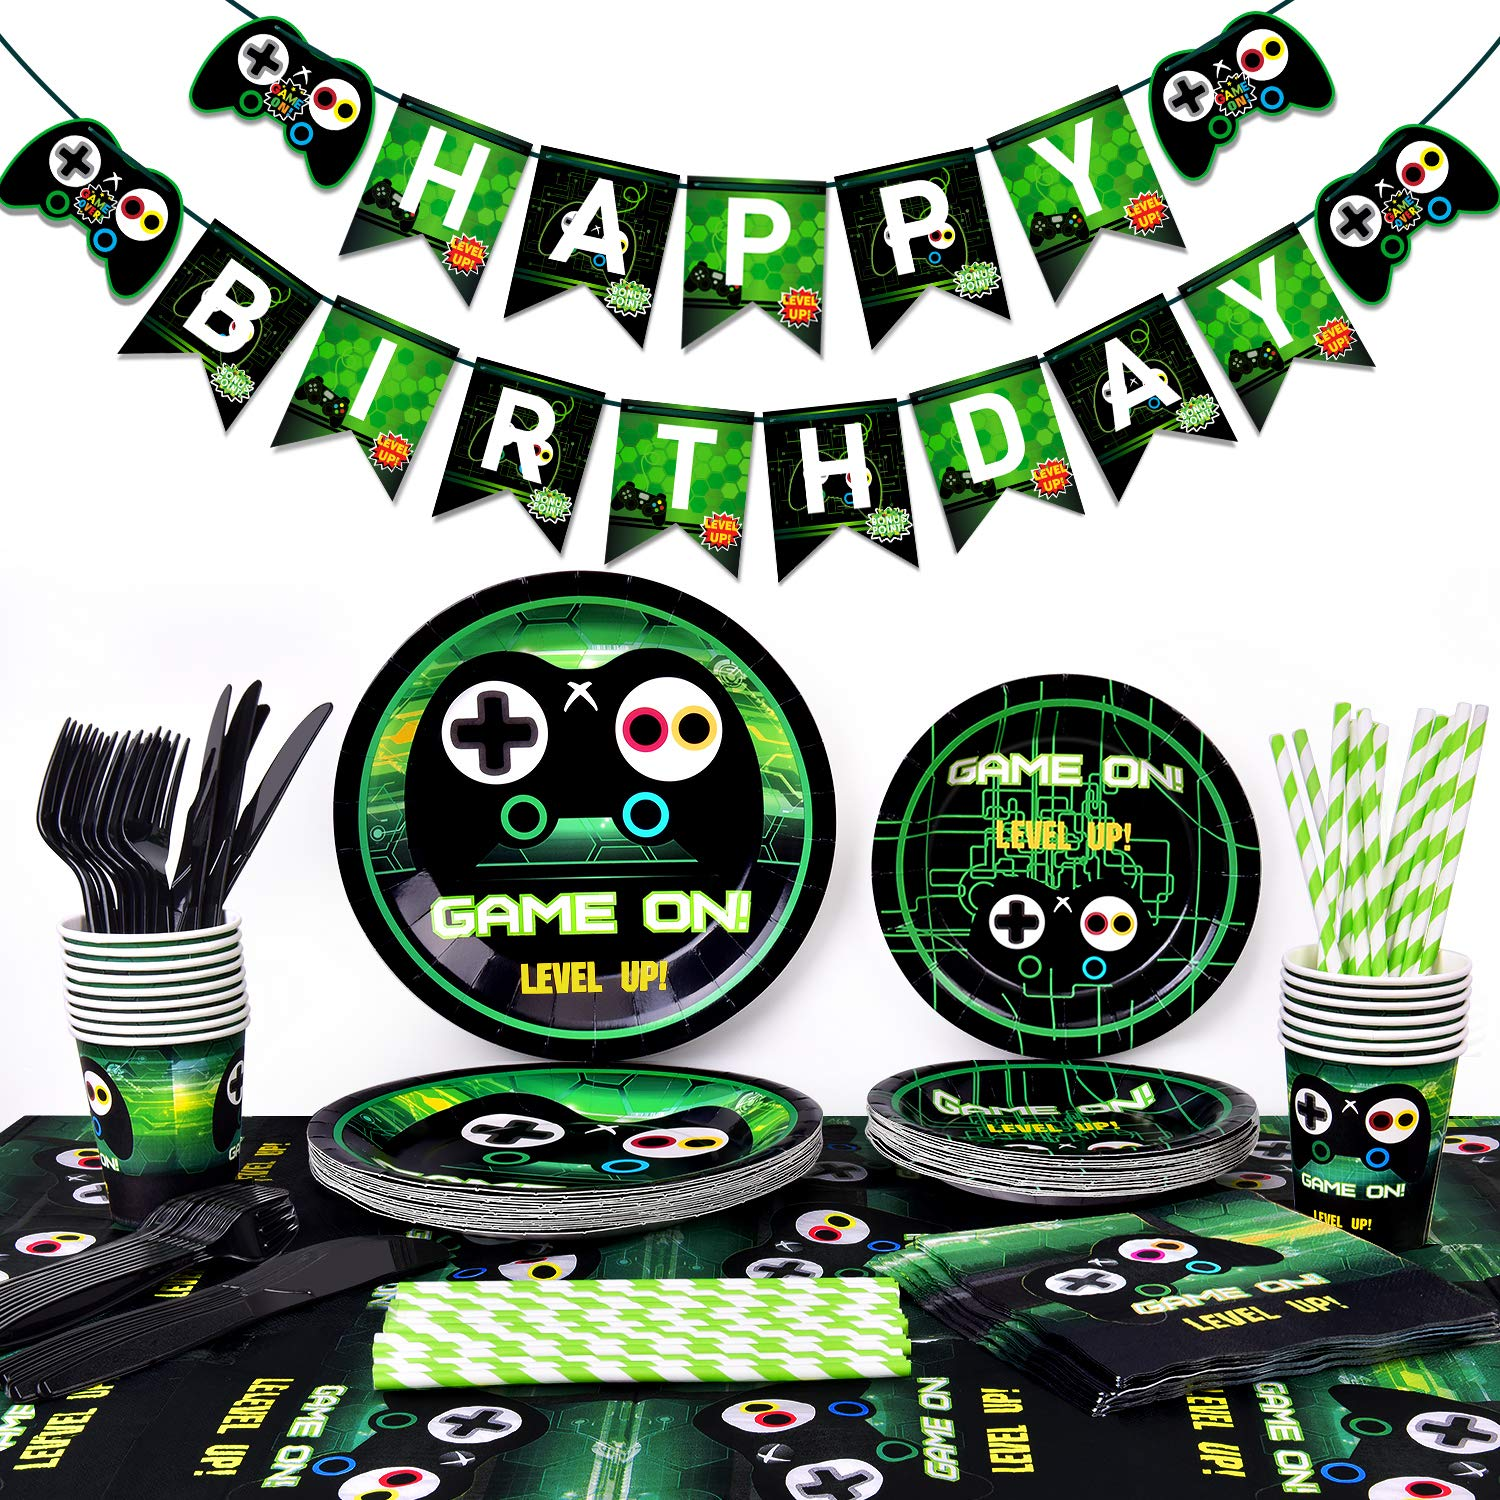 Video Game Party Supplies-Gamer Birthday Party Supplies Including Gaing Paper Plates,Cups,Napkins, Straws And Happy Birthday Banner For Boy Gamer Birthday Party Decoration by Threemart